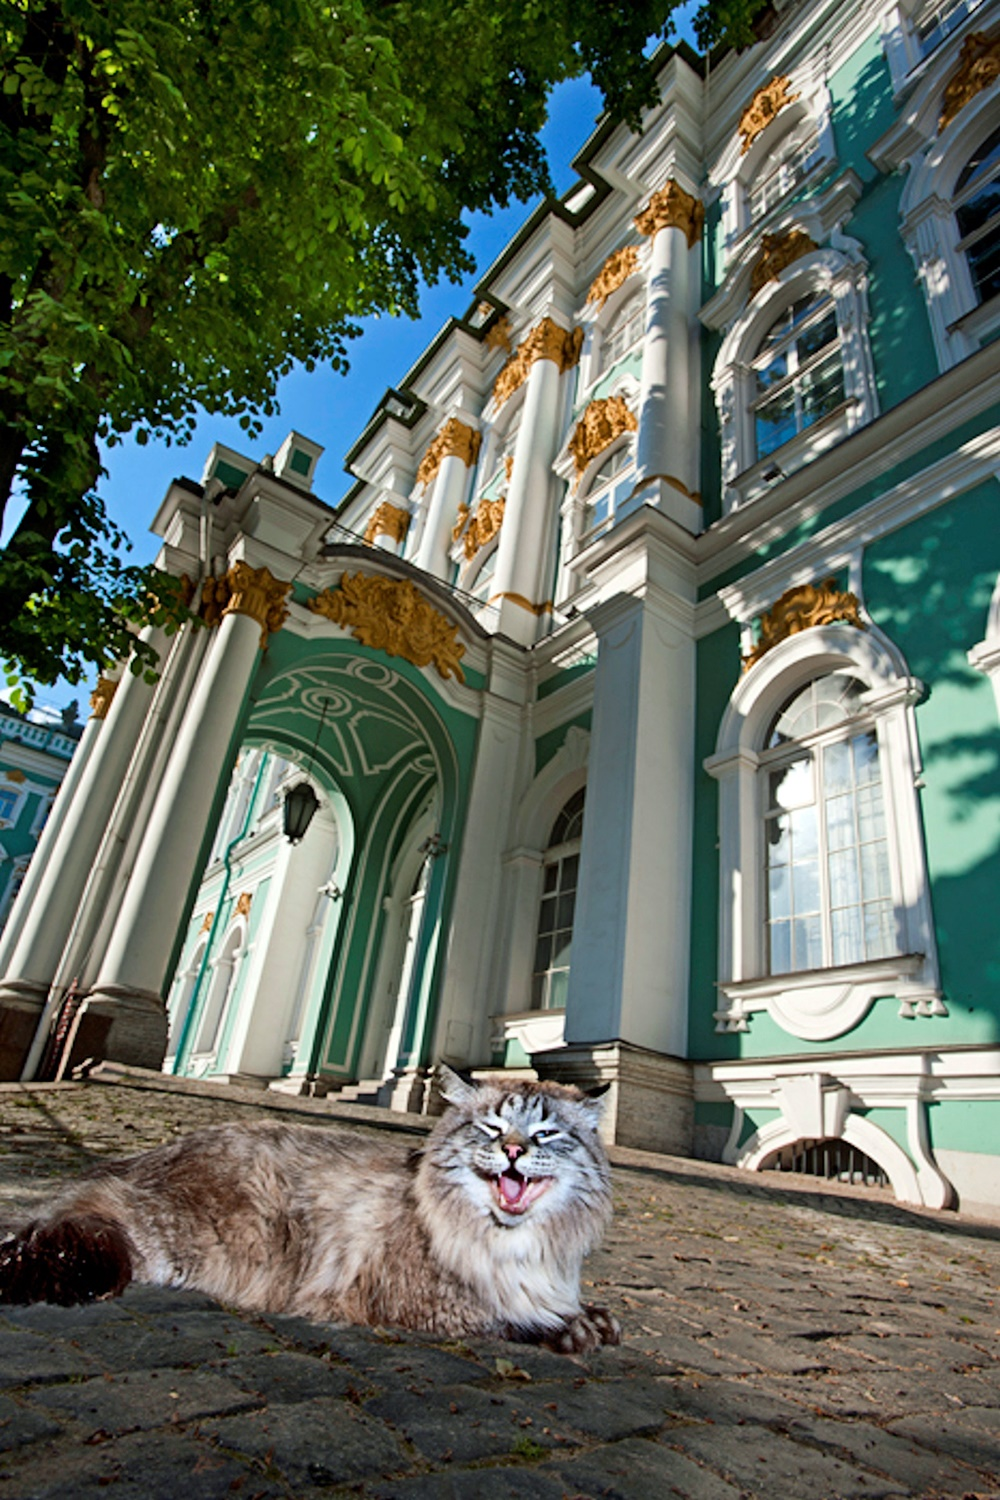 00 hermitage cats. russia. st petersburg. 02. 25.10.14